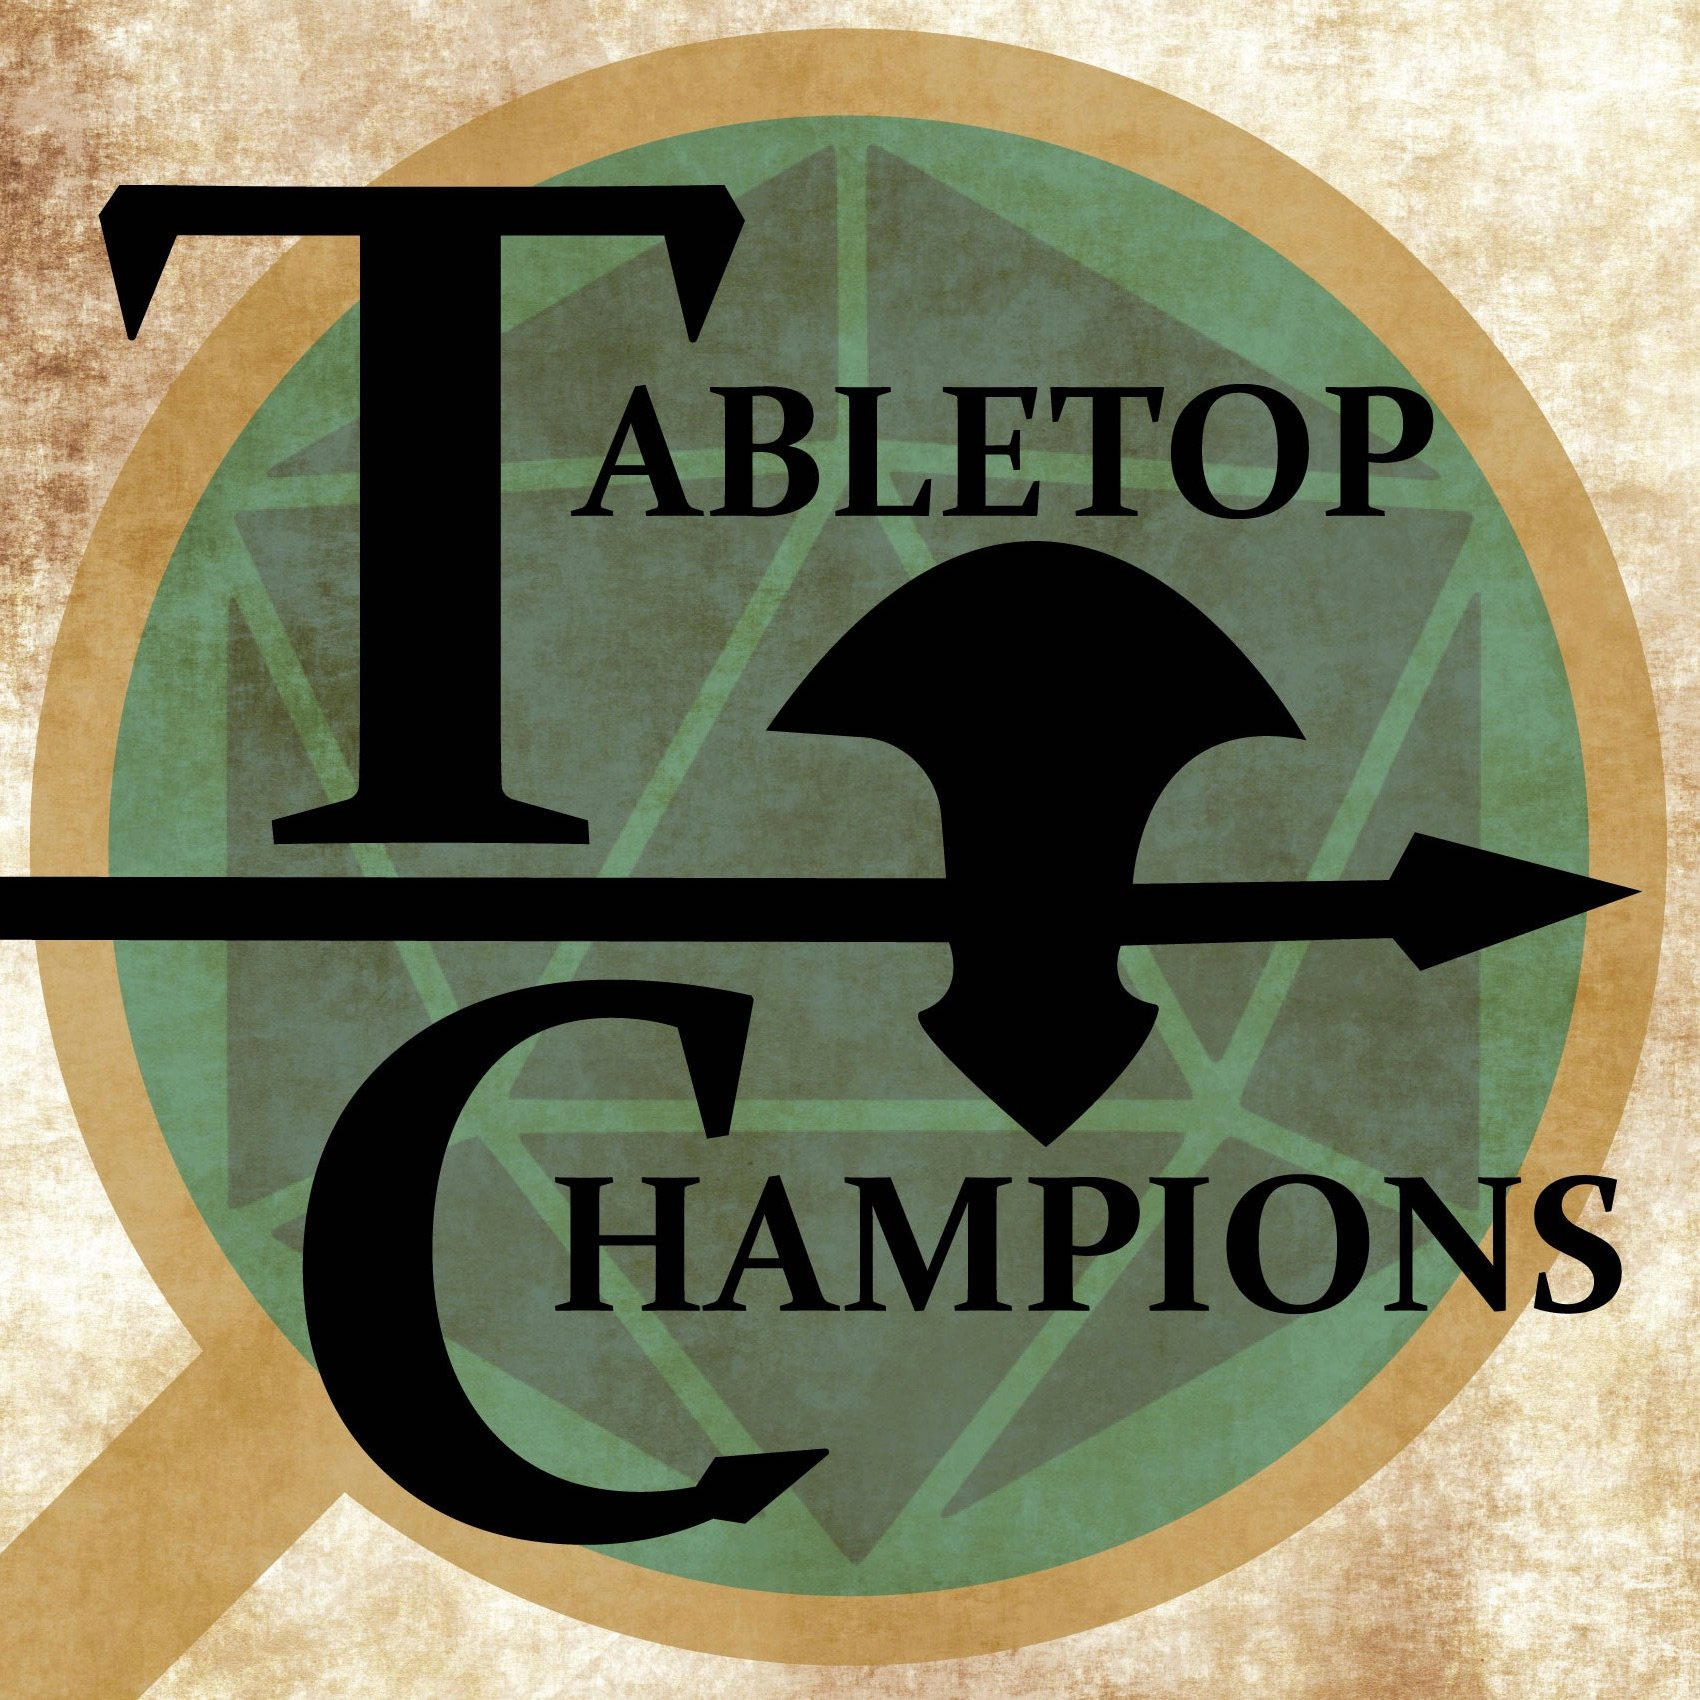 The Tabletop Champions are 6 awesome people, 5 players and a dungeon-master who play Dungeons and dragons 5th edition. Sean (the DM) heads the table on their hilarious and epic quests.   Players Kyle, Ben,  Matt , Stephanie and Lauren . These fine individuals meet online on a weekly basis for the recording of the podcast.  Diomedes Industries has partnered with them to produce official Tabletop Champtions Dicebags.   (Click on picture to check out their page.)